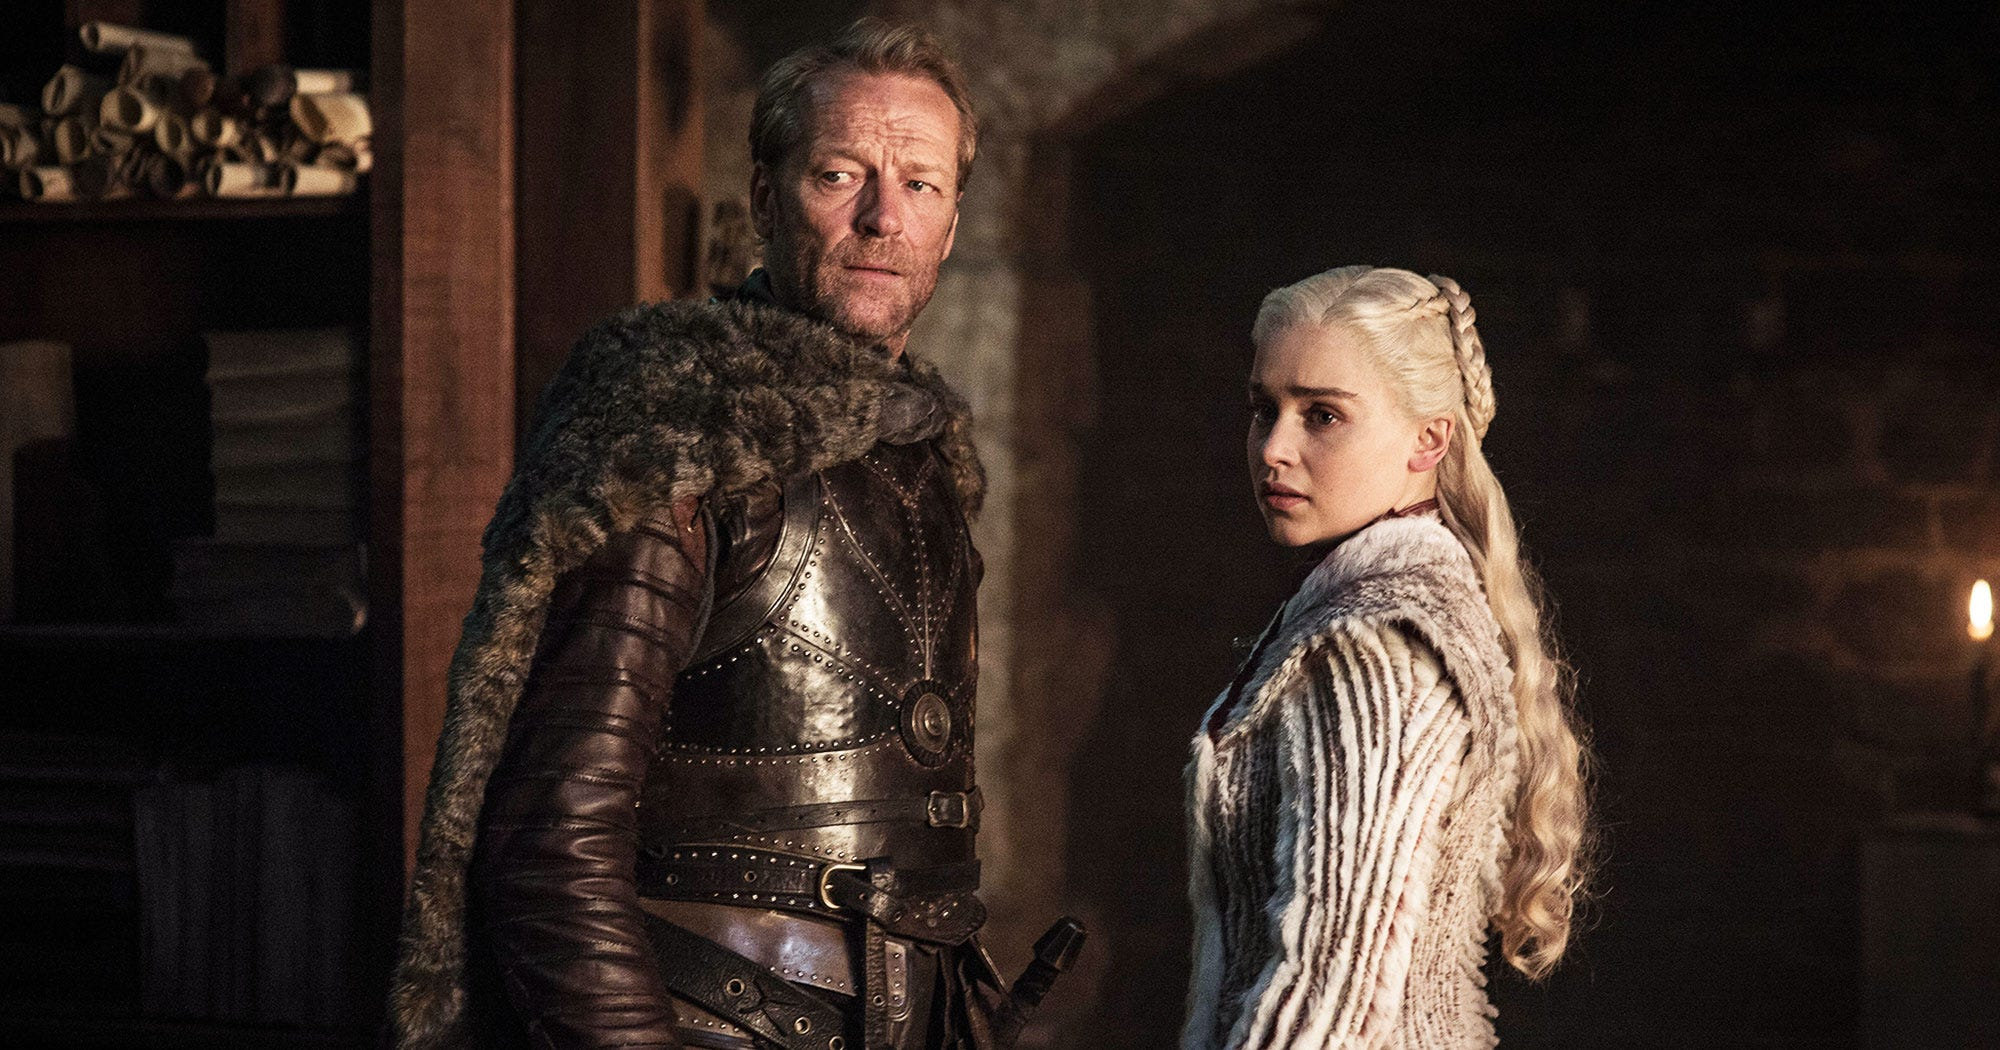 How To Watch Game Of Thrones Without HBO: Viewing Guide